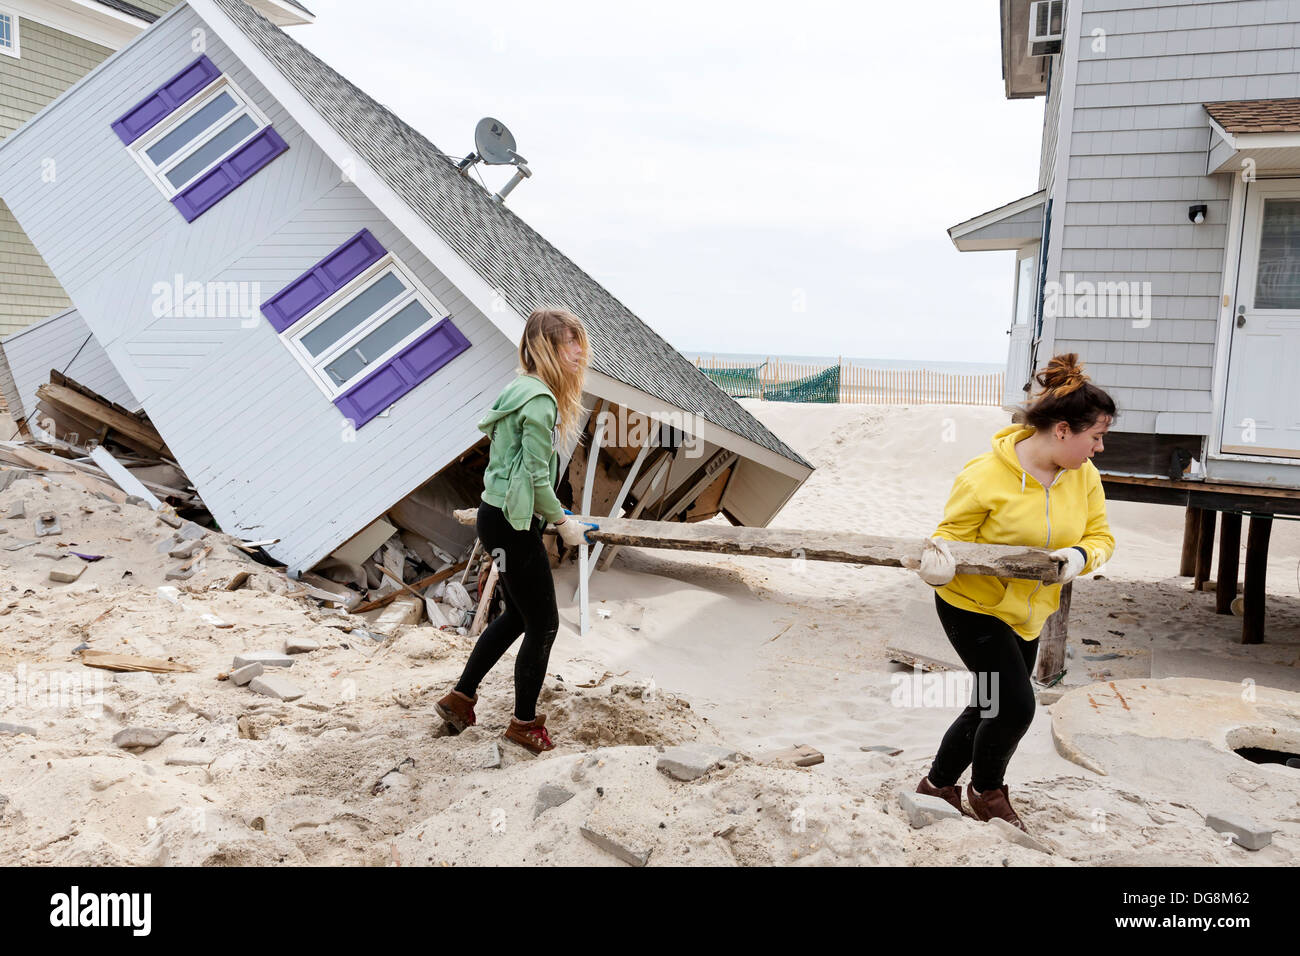 Volunteers cleaning up after a hurricane destroyed a house. A hurricane leaves a path of destruction destroying homes. - Stock Image